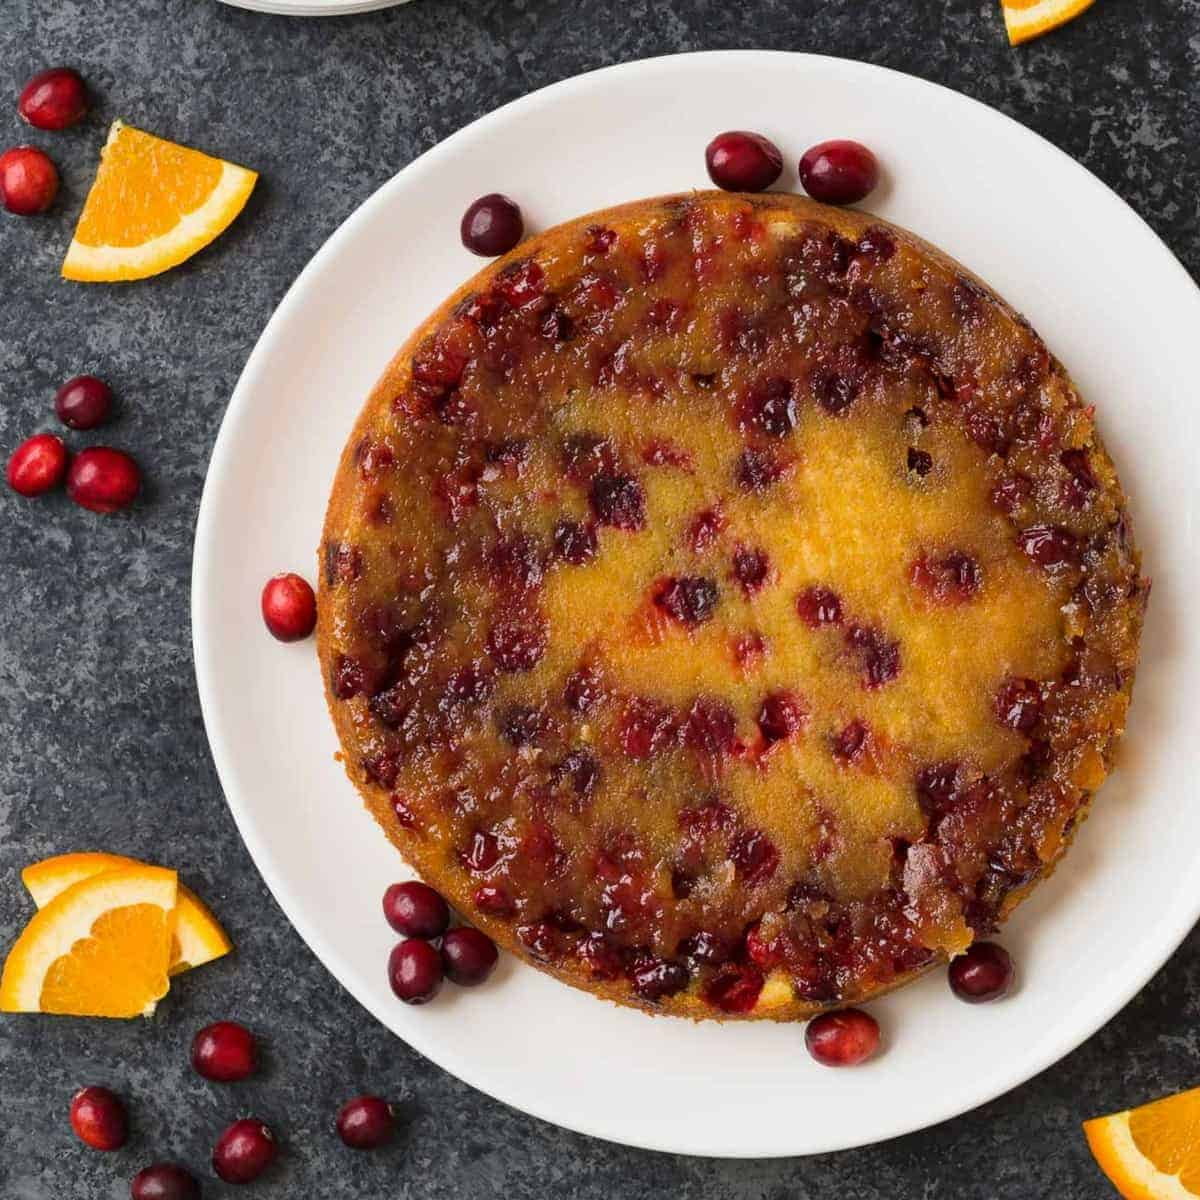 Inverted Cranberry Orange Upside Down Cake on a serving plate.